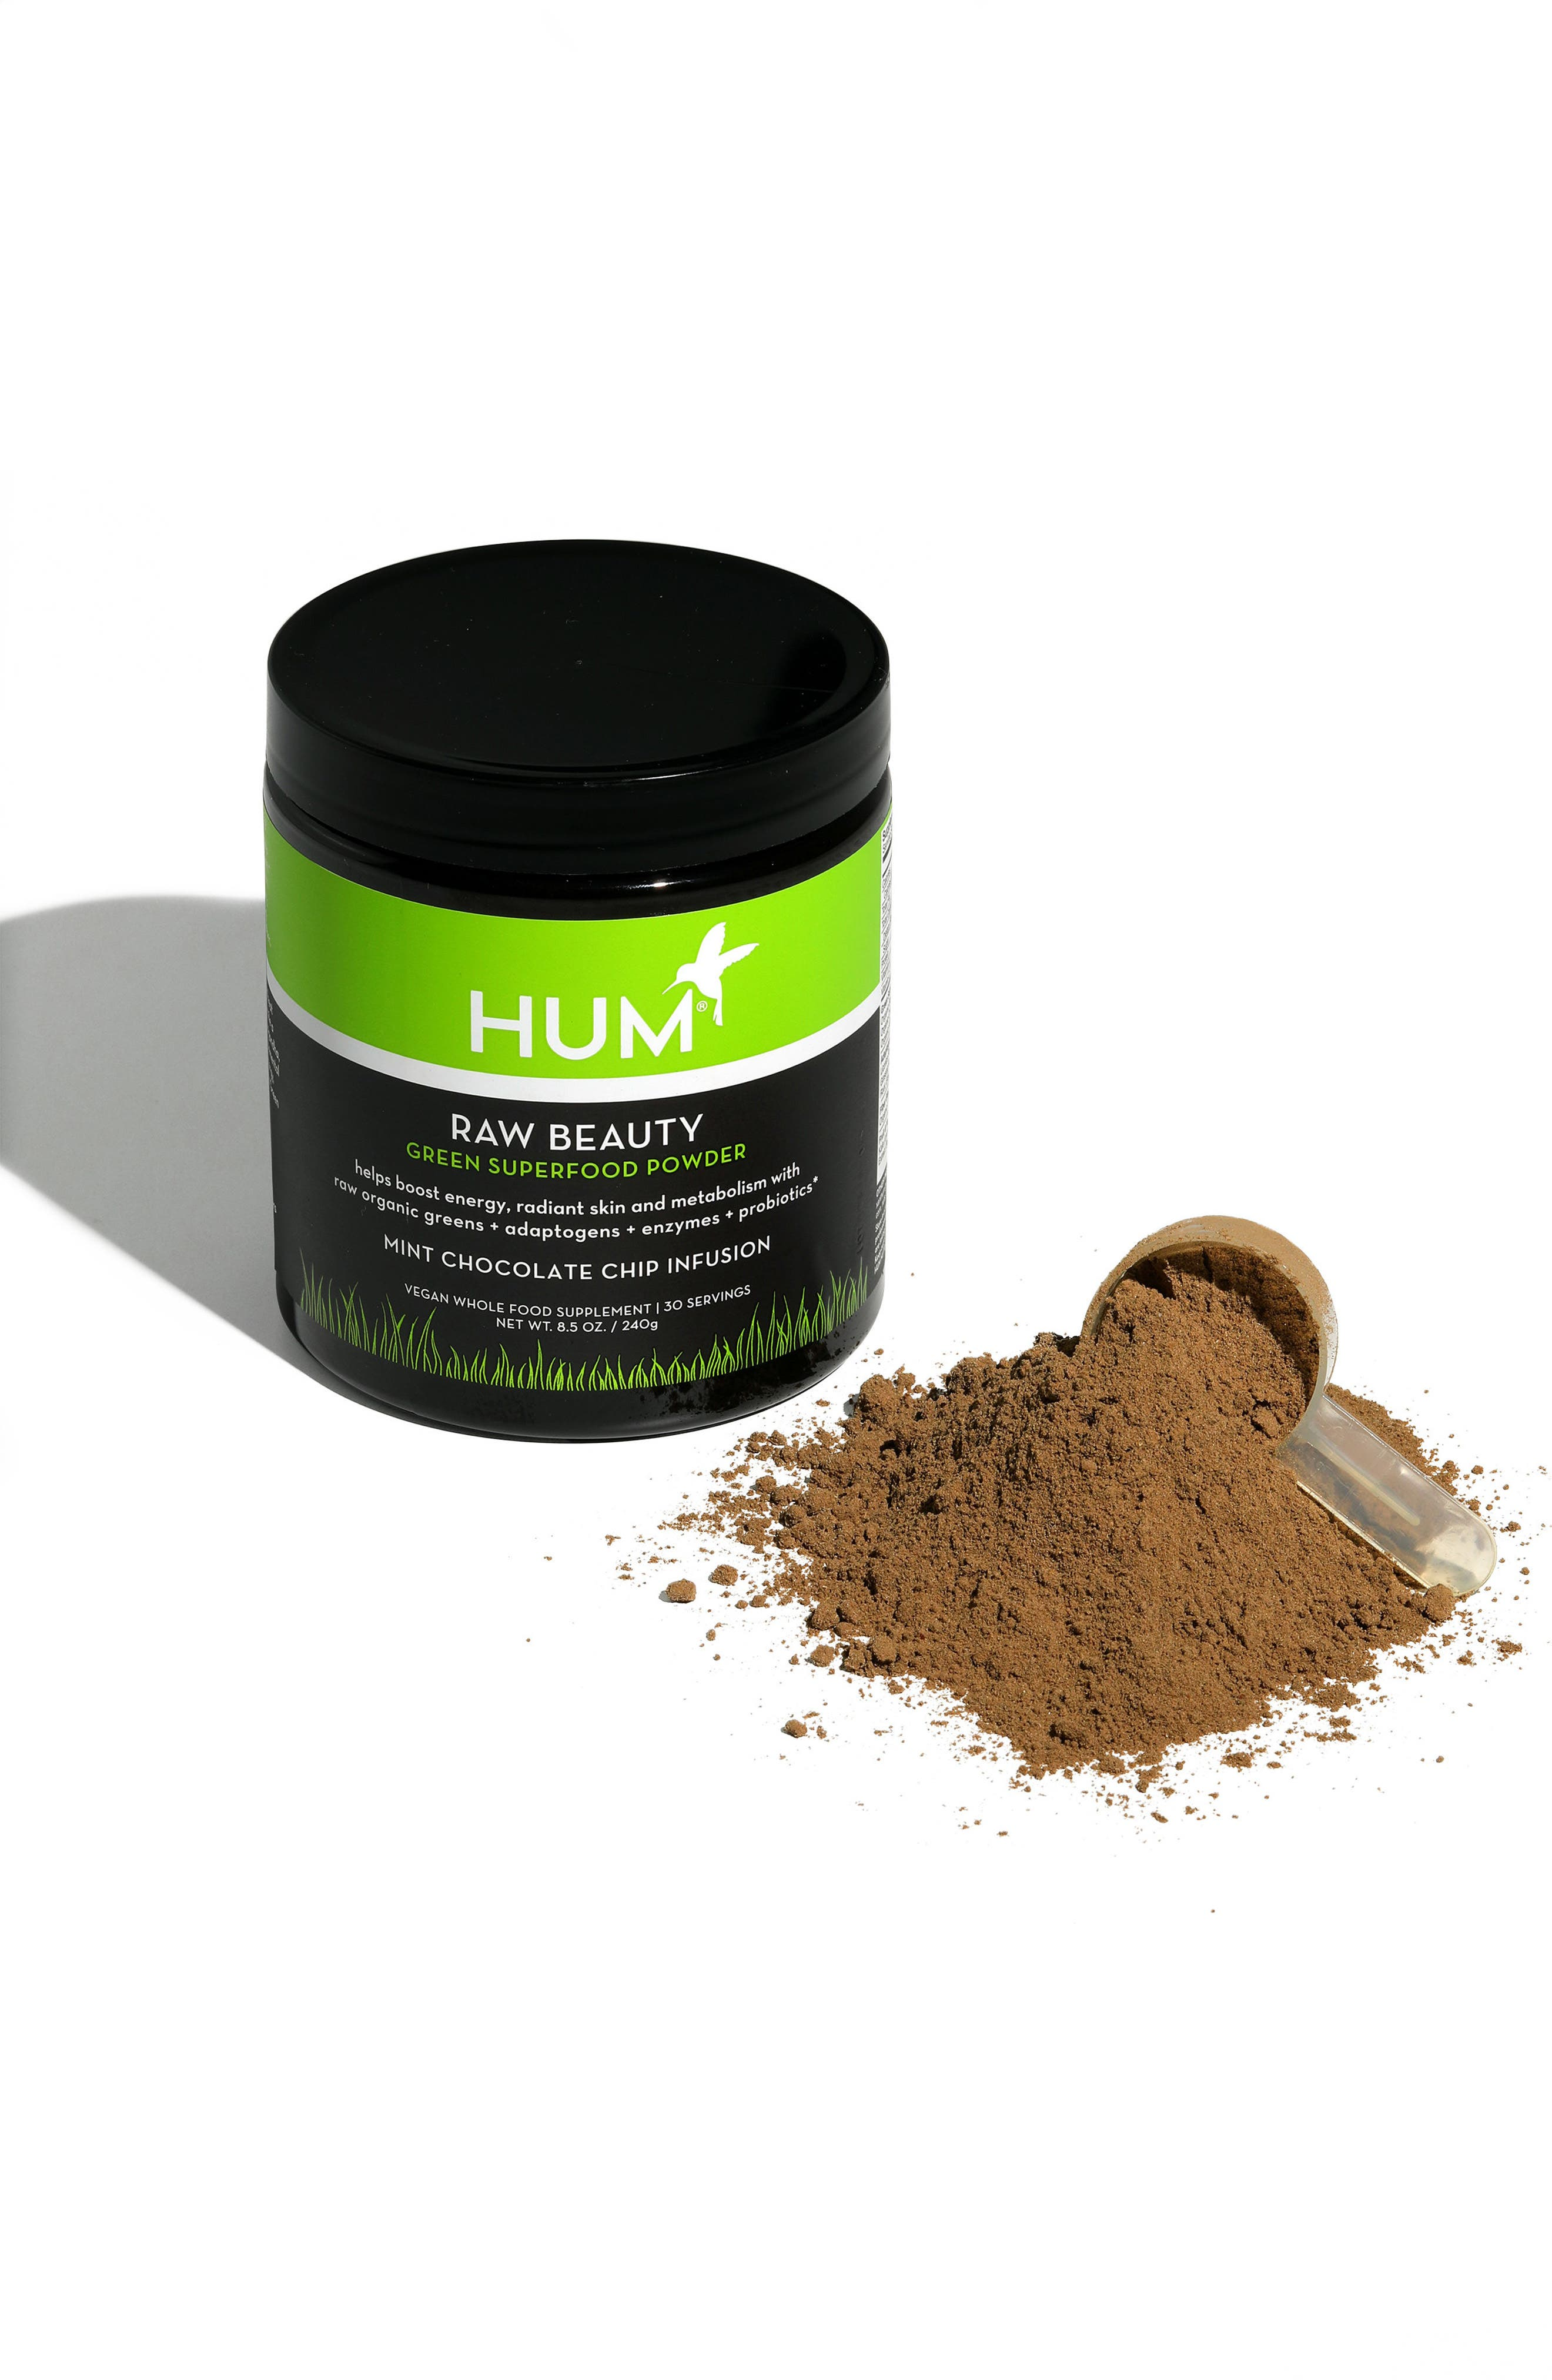 Raw Beauty Skin & Energy Green Superfood Powder,                             Alternate thumbnail 4, color,                             NO COLOR